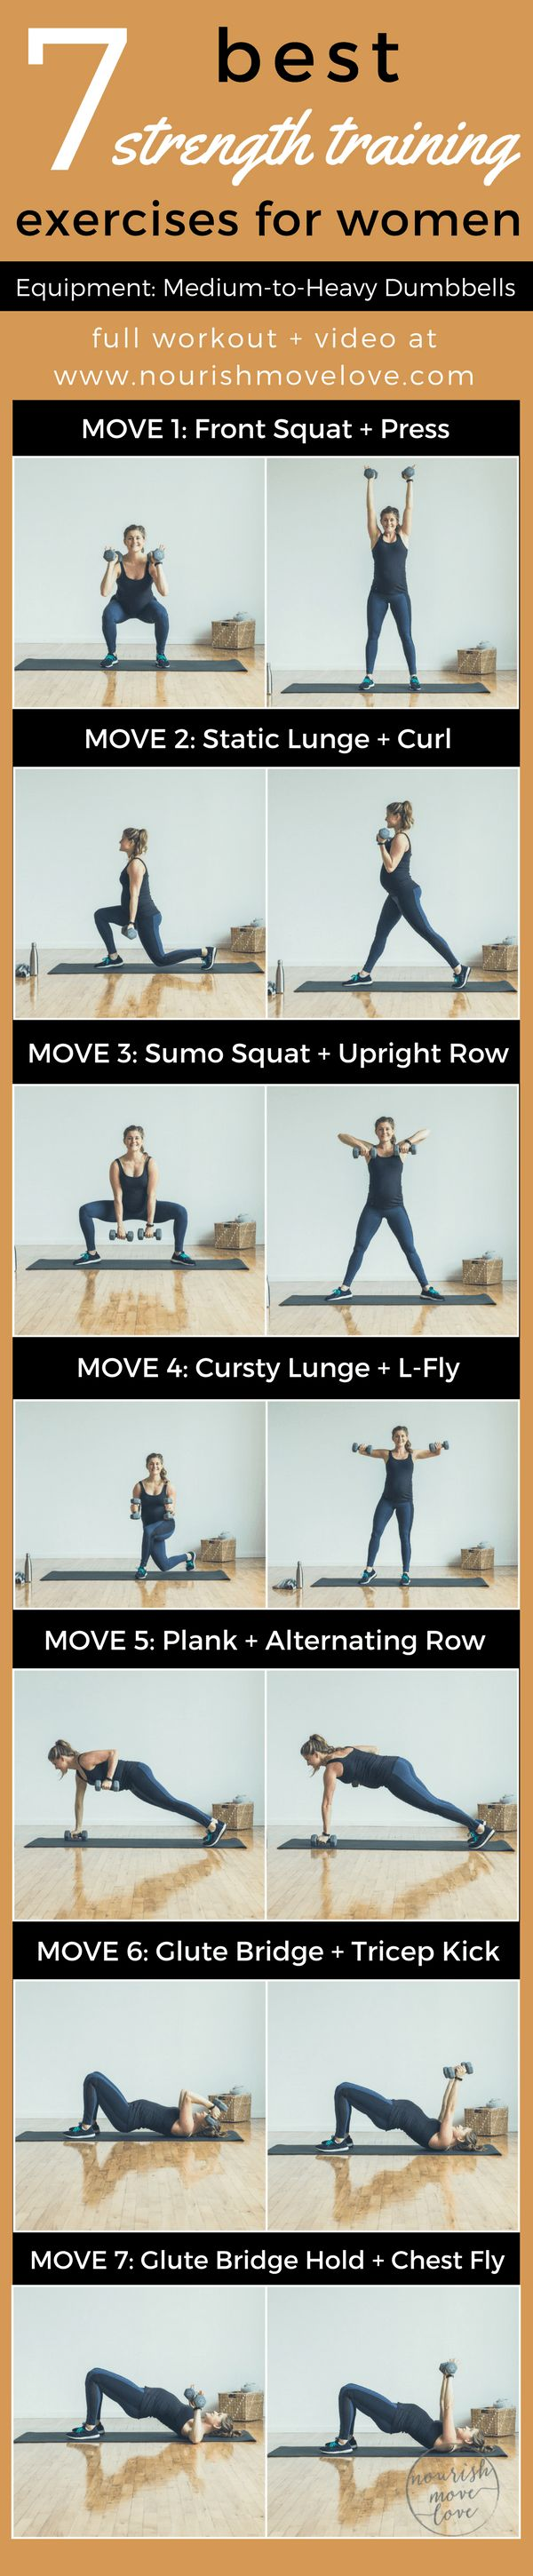 7 Best Strength Training Exercises for Women with Amari Activewear